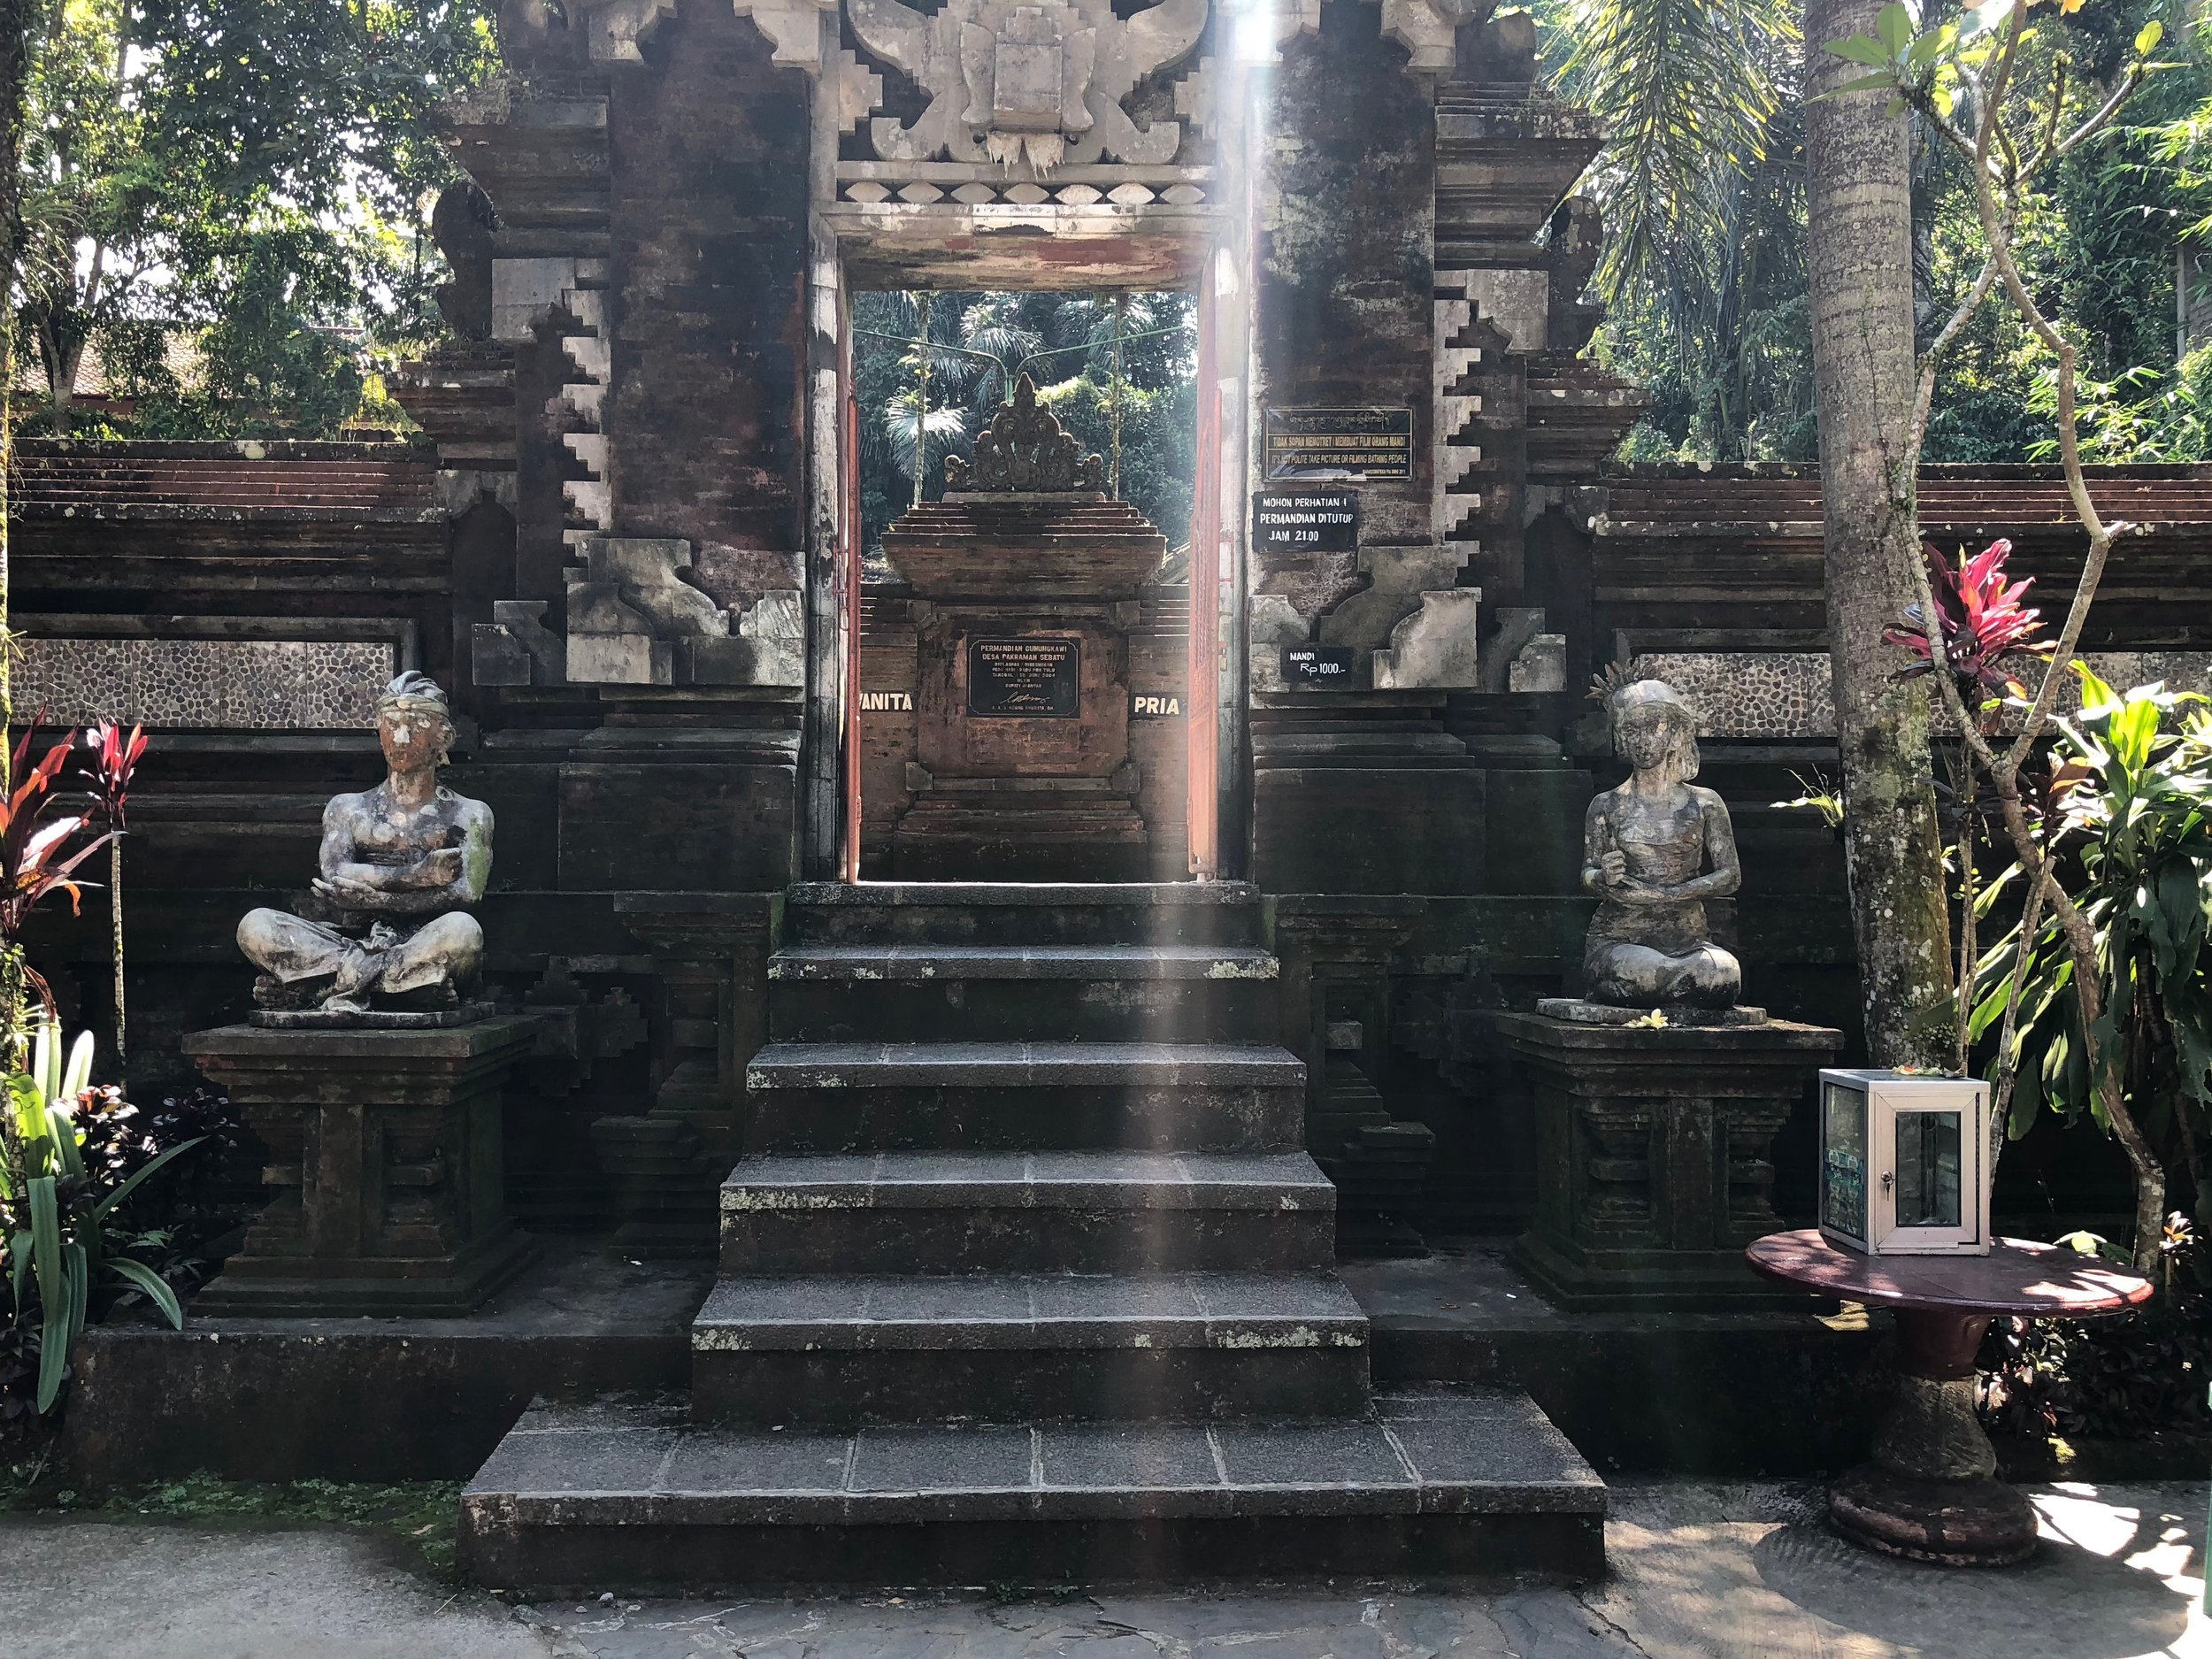 Before you cross the threshold of this sacred space, make sure you're wearing a sarong